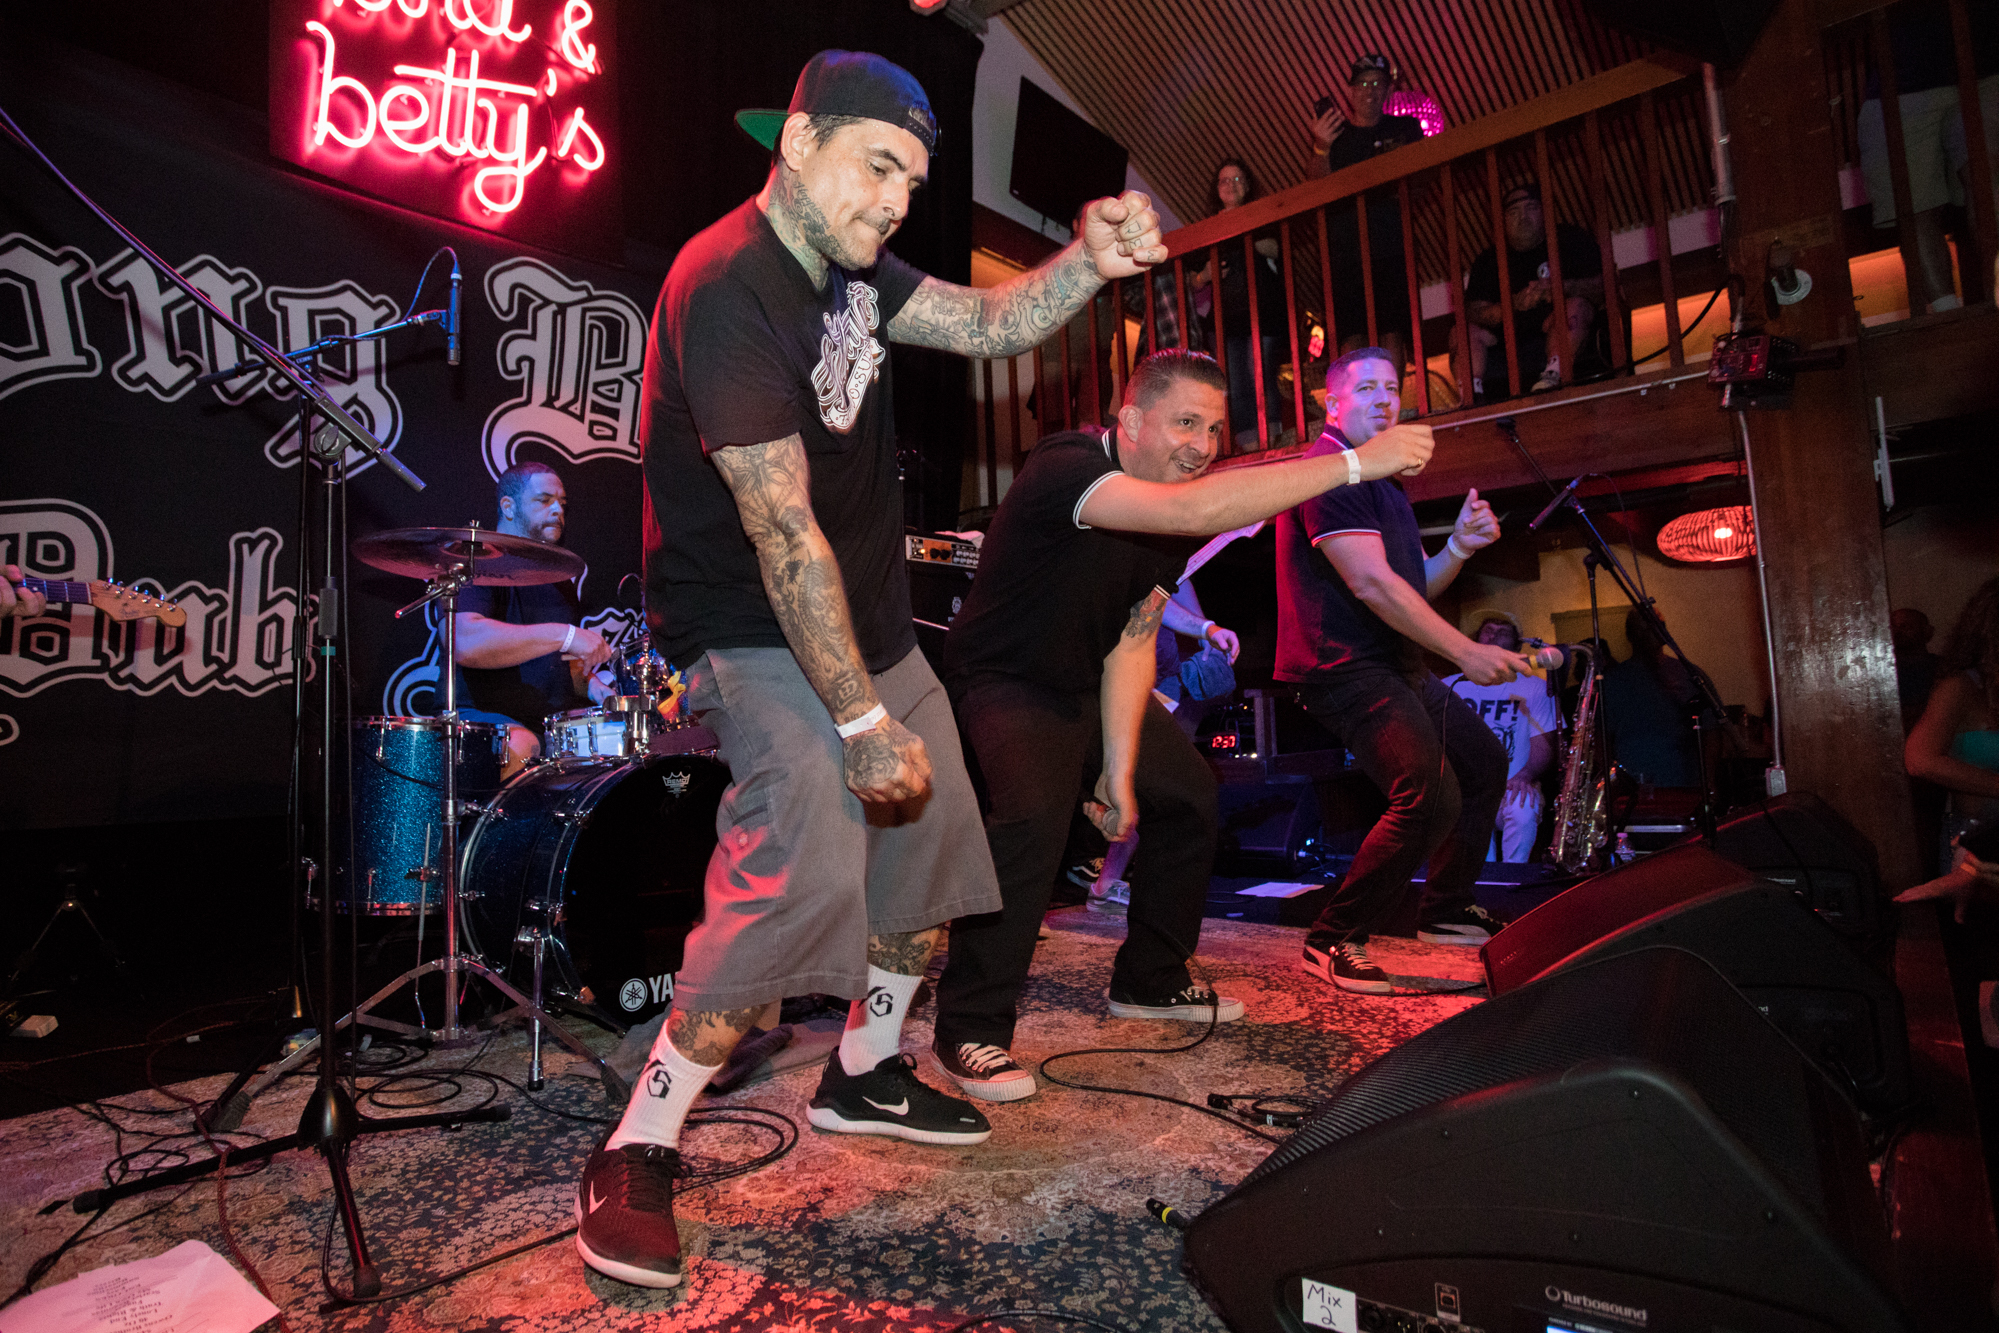 The Long Beach Dub All Stars' Opie Ortiz joins the Aggrolites on stage at Bird & Betty's. Photo: LJ Hepp.